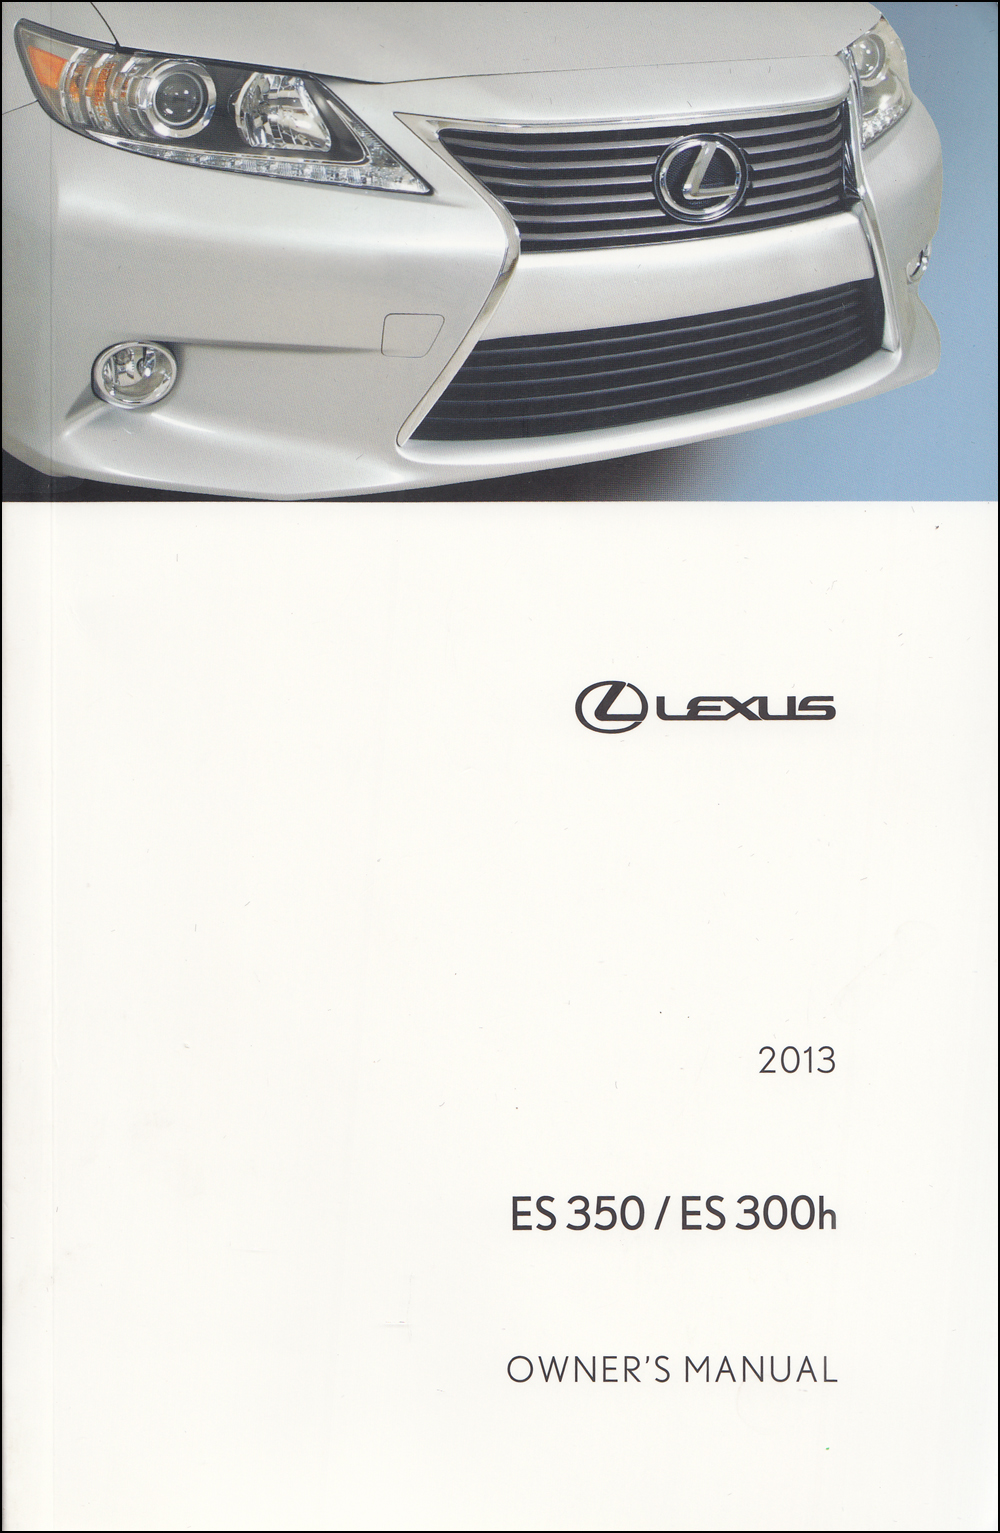 2013 Lexus ES 350 / ES 300h Owners Manual Original